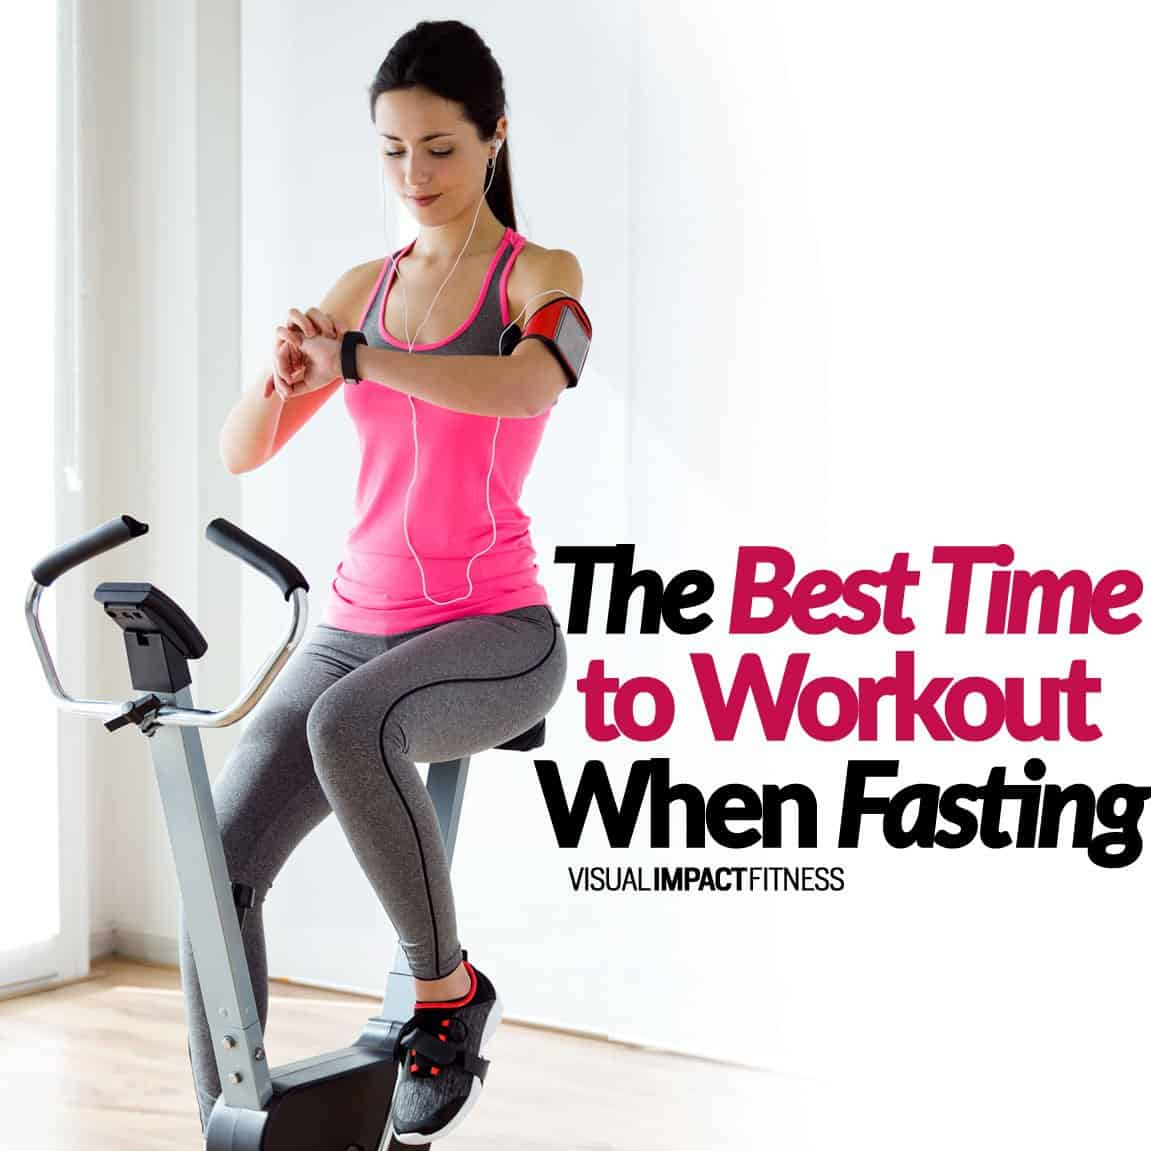 The Best Time to Workout When Fasting